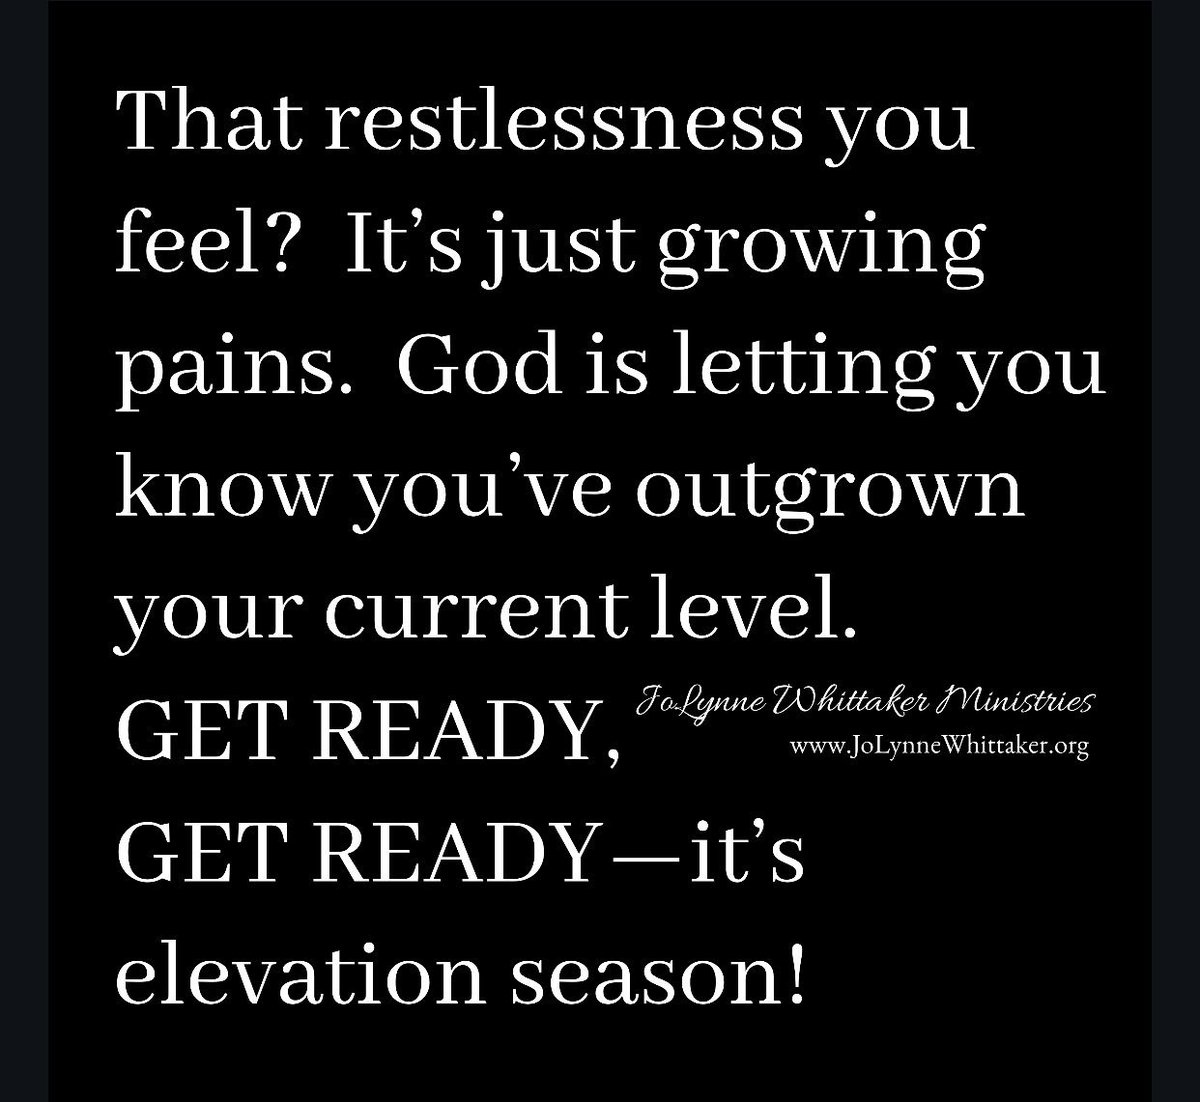 That restlessness you feel is just growing pains! God is